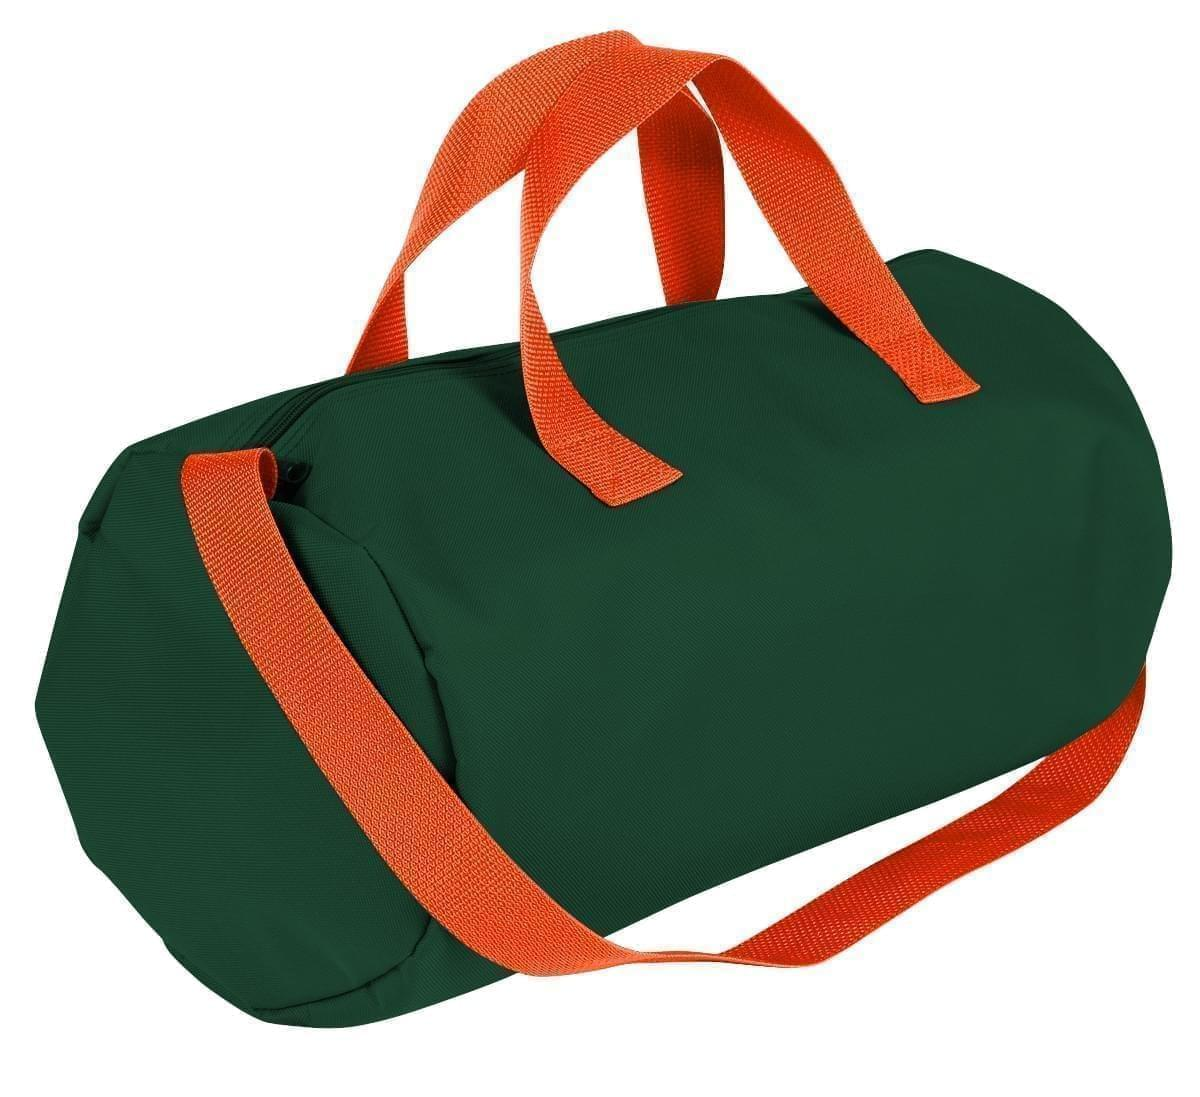 USA Made Nylon Poly Gym Roll Bags, Hunter Green-Orange, ROCX31AAS0